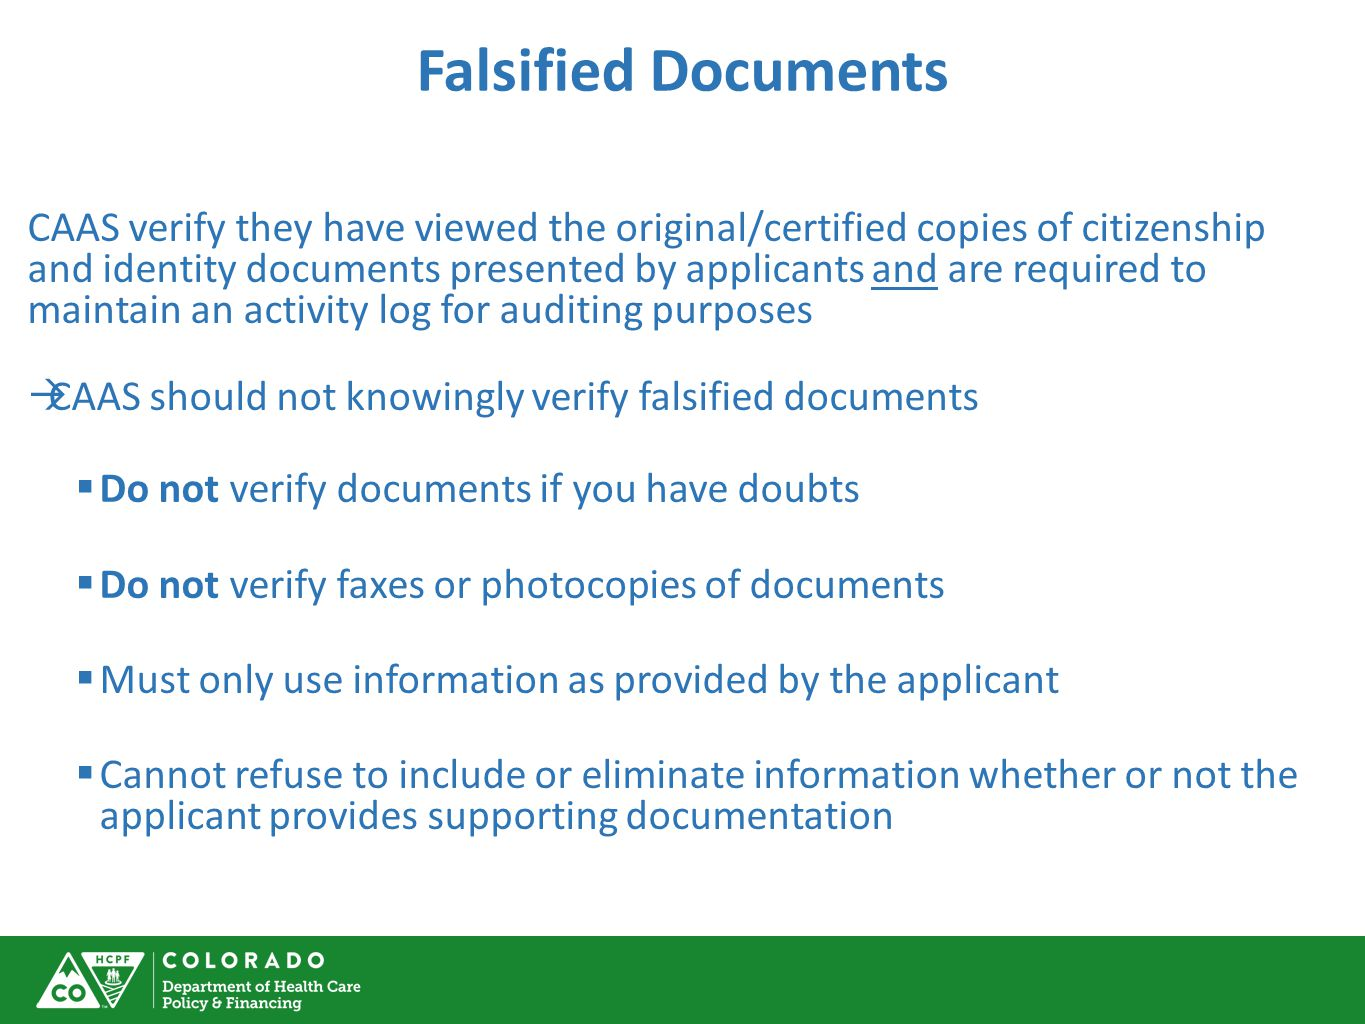 Falsified Documents CAAS verify they have viewed the original/certified copies of citizenship and identity documents presented by applicants and are required to maintain an activity log for auditing purposes  CAAS should not knowingly verify falsified documents  Do not verify documents if you have doubts  Do not verify faxes or photocopies of documents  Must only use information as provided by the applicant  Cannot refuse to include or eliminate information whether or not the applicant provides supporting documentation